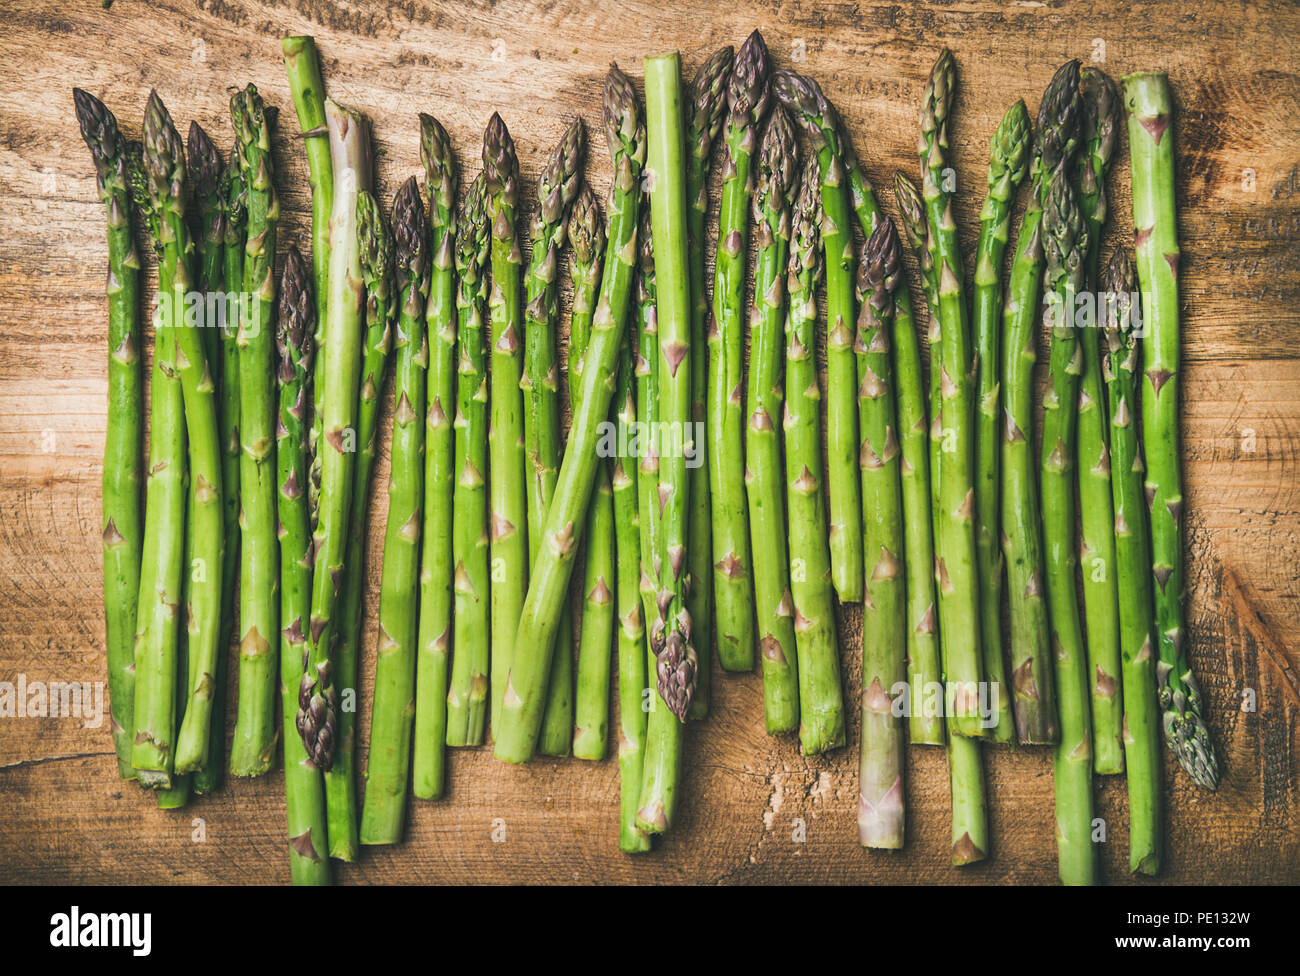 Raw uncooked green asparagus in row over wooden background - Stock Image